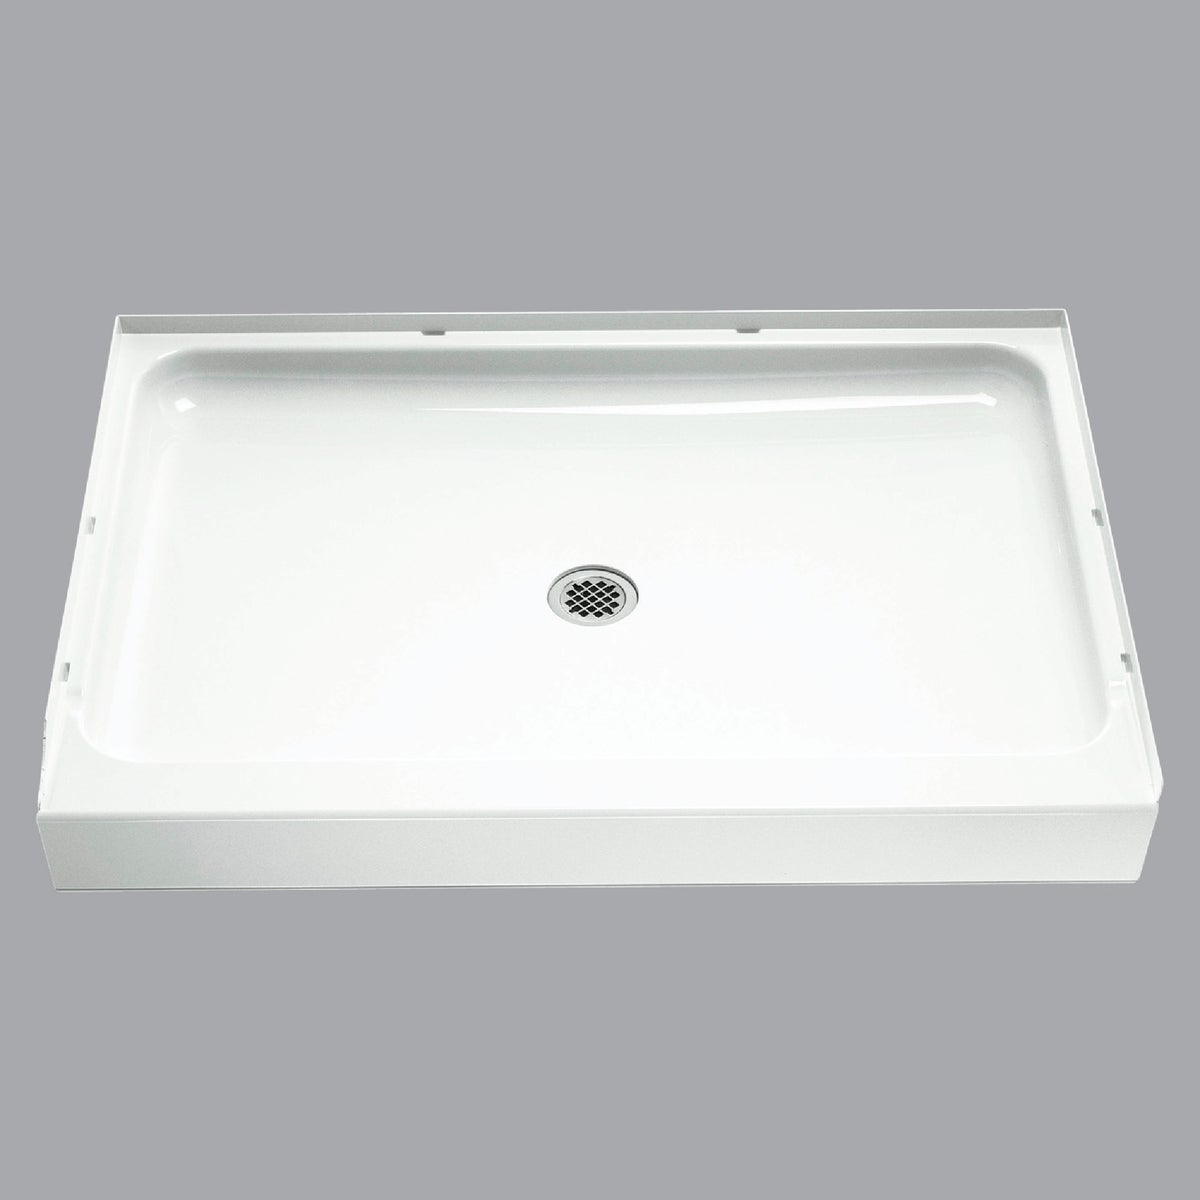 "48"" WHITE ENSEMBLE BASE - 72121100-0 by Sterling Pbg/vikrell"